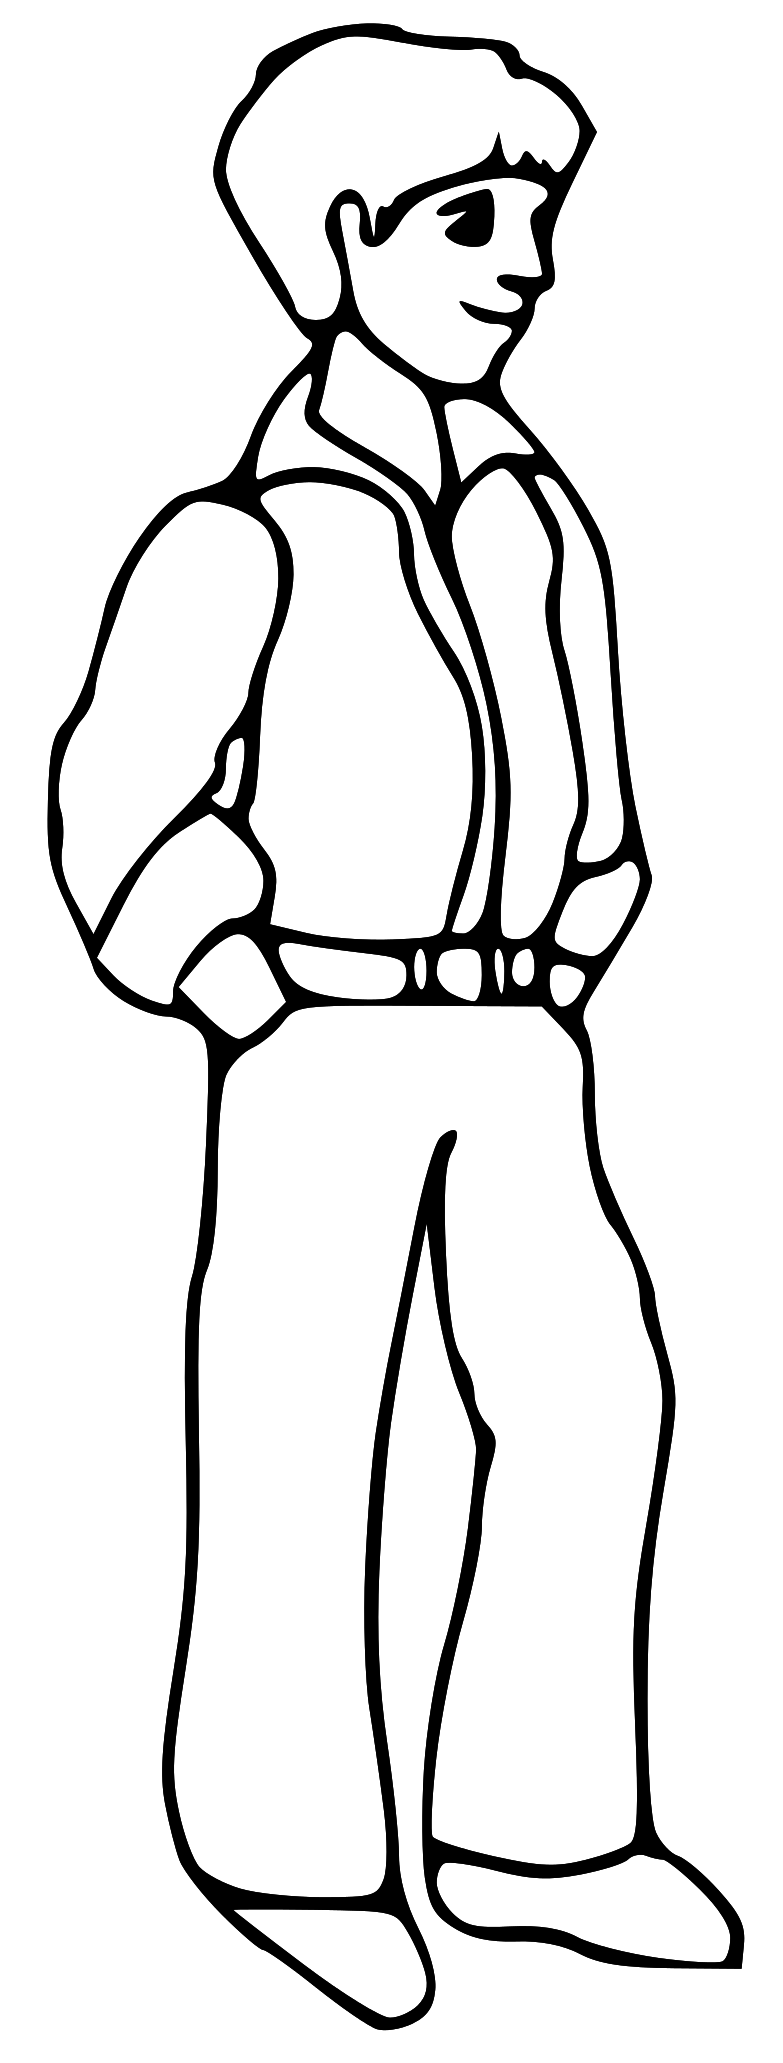 Man Clipart Black And White.